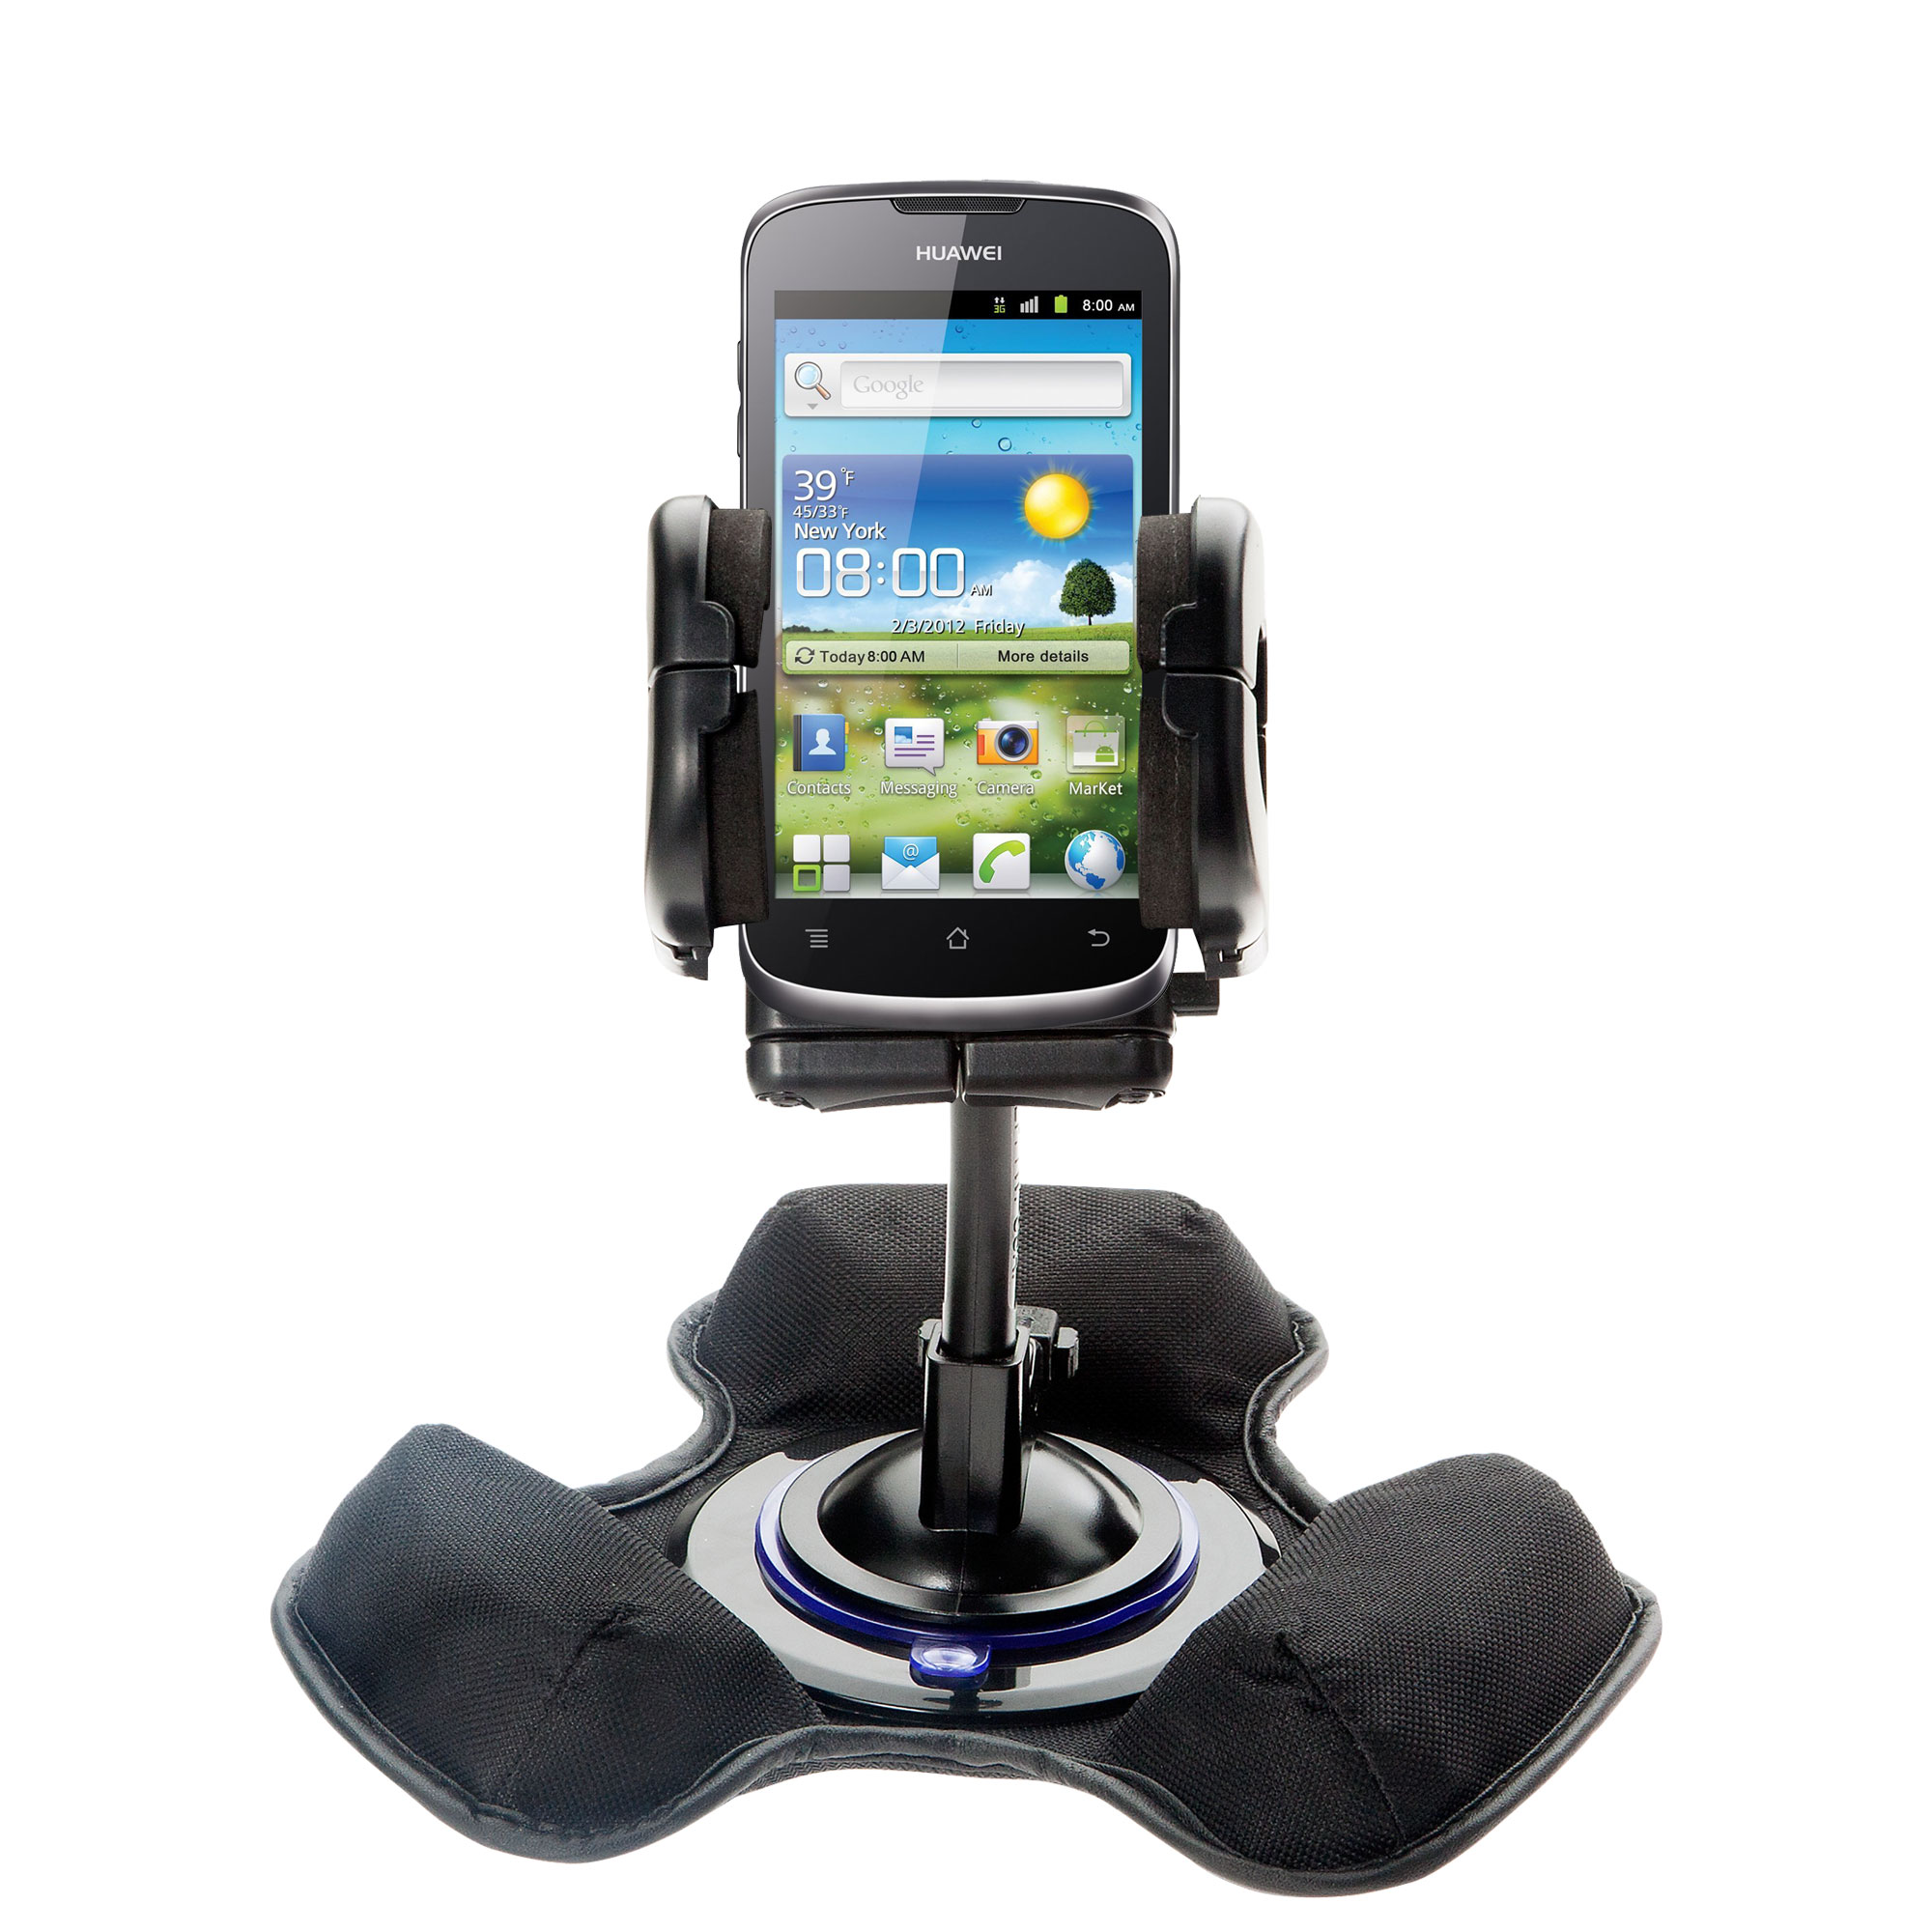 Car / Truck Vehicle Holder Mounting System for Huawei U8815 Includes Unique Flexible Windshield Suction and Universal Dashboard Mount Options